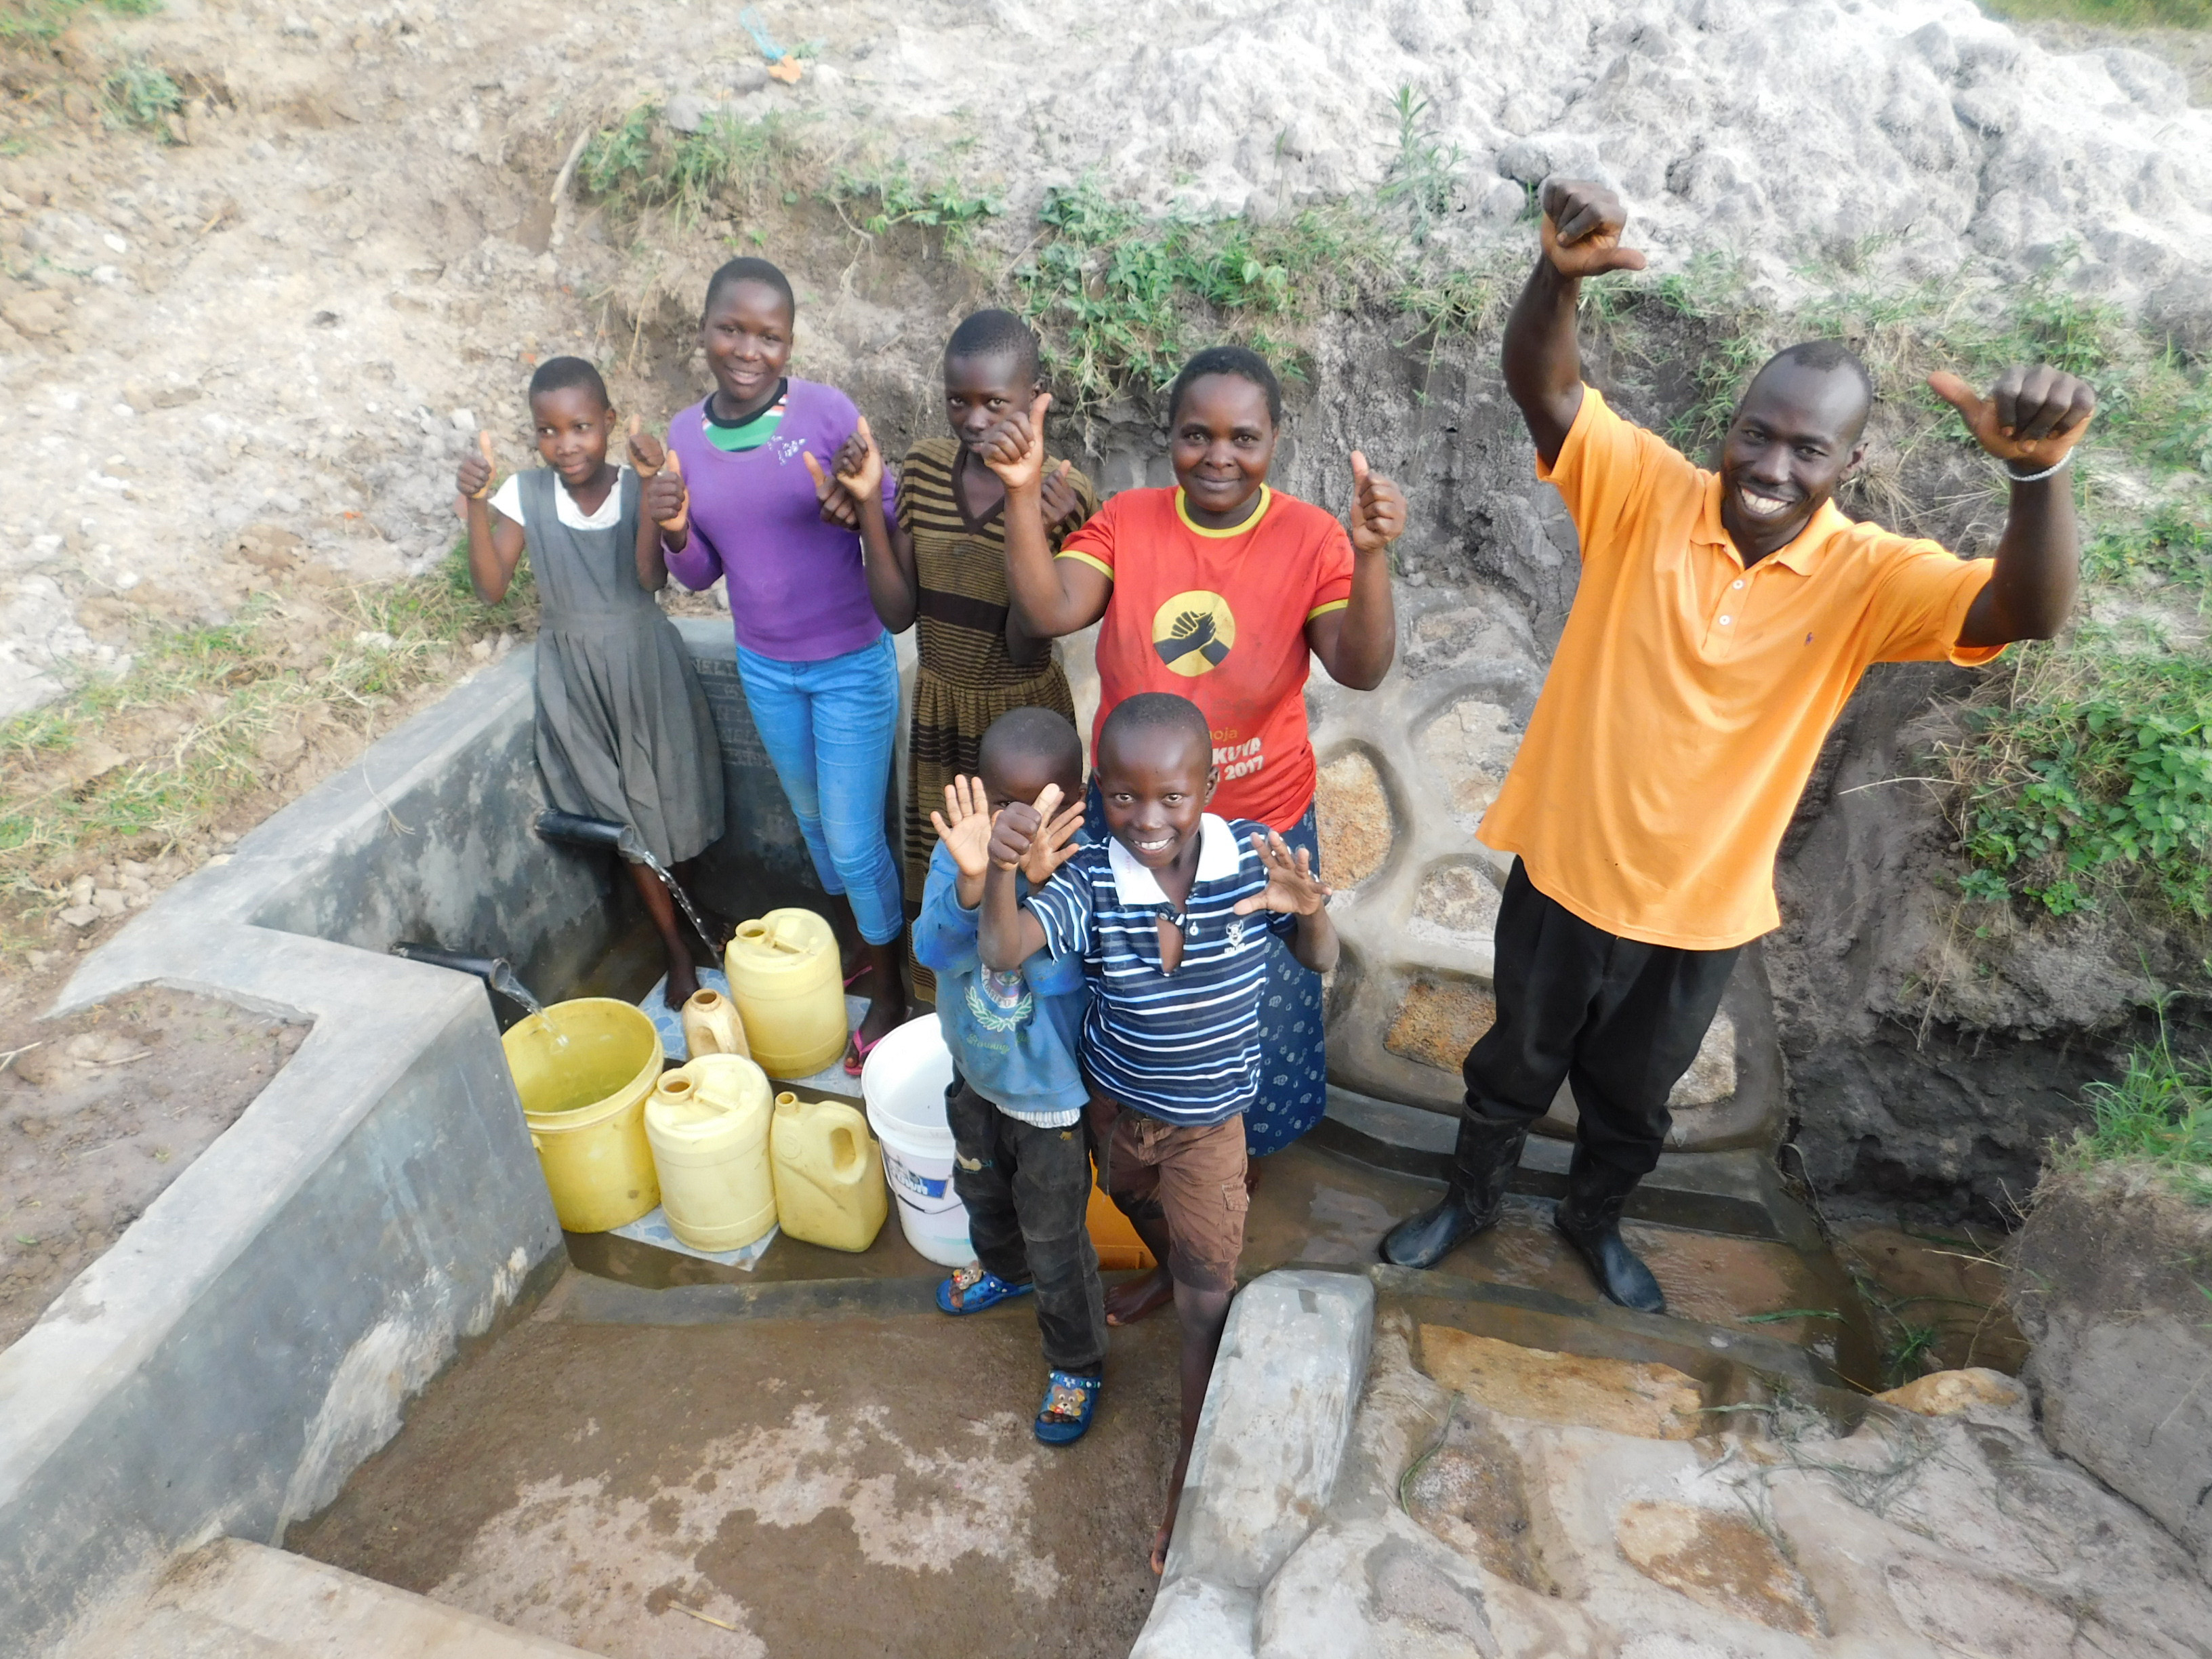 The Water Project : 13-5-kenya19094-thumbs-up-for-clean-water